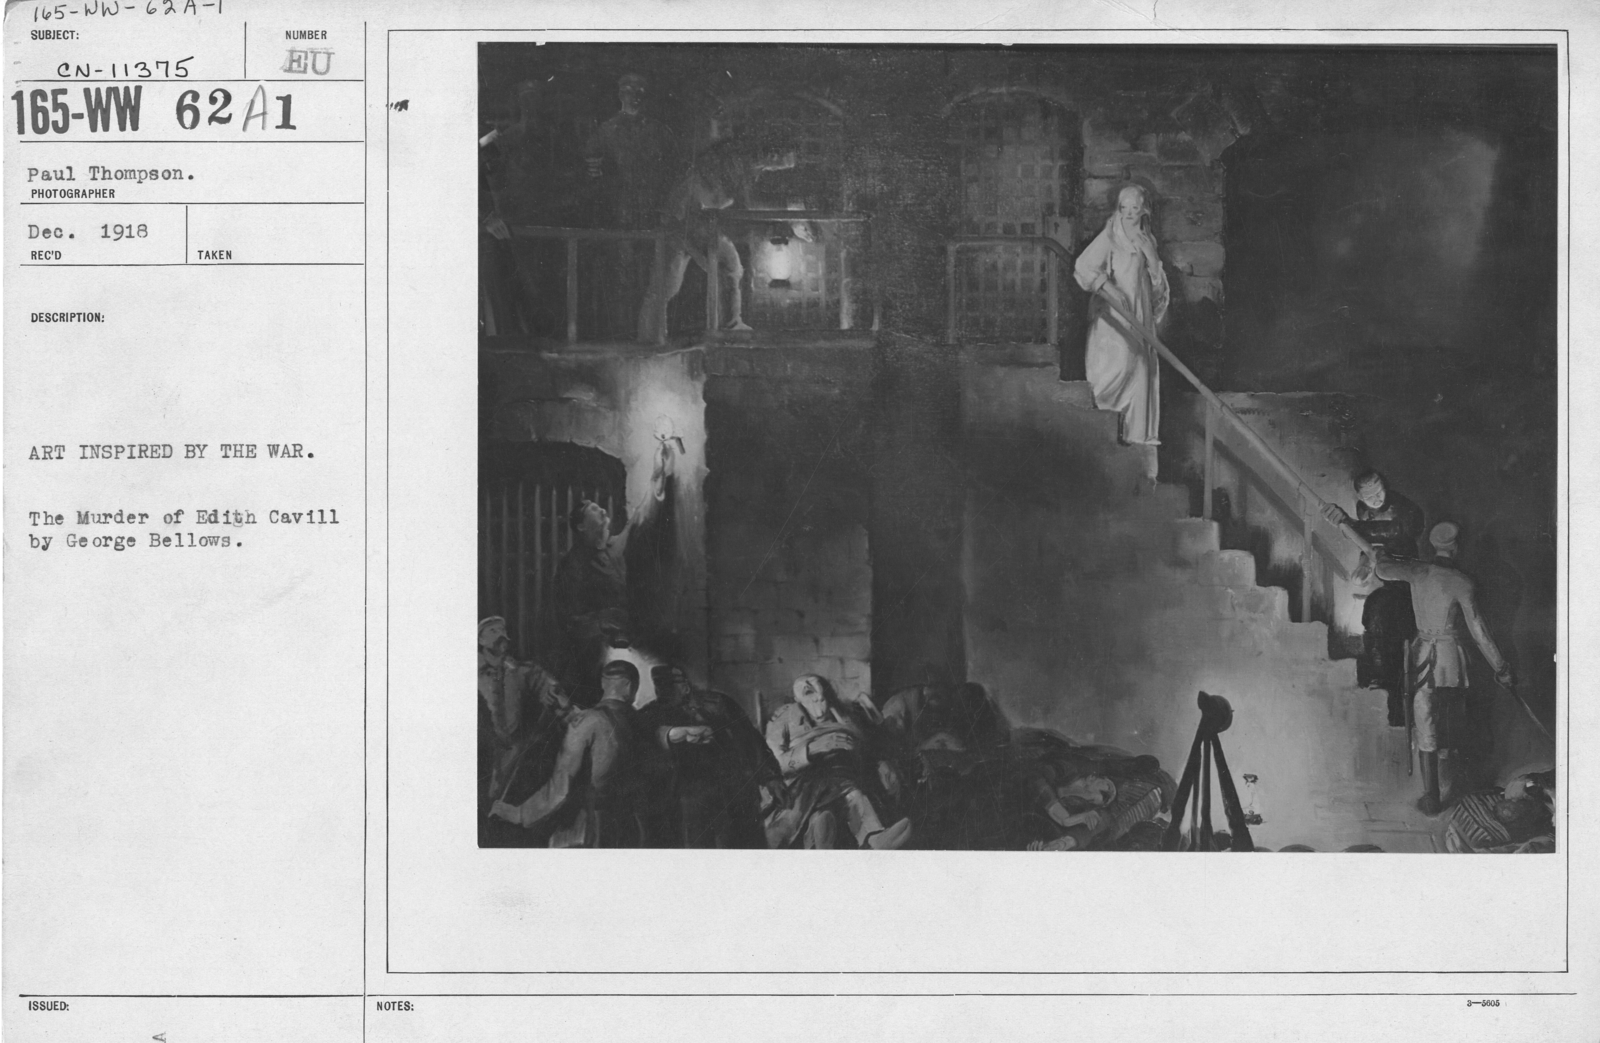 Artists - American Artworks (Wartime Cartoons) - Art inspired by the war. The Murder of Edith Cavill by George Bellows